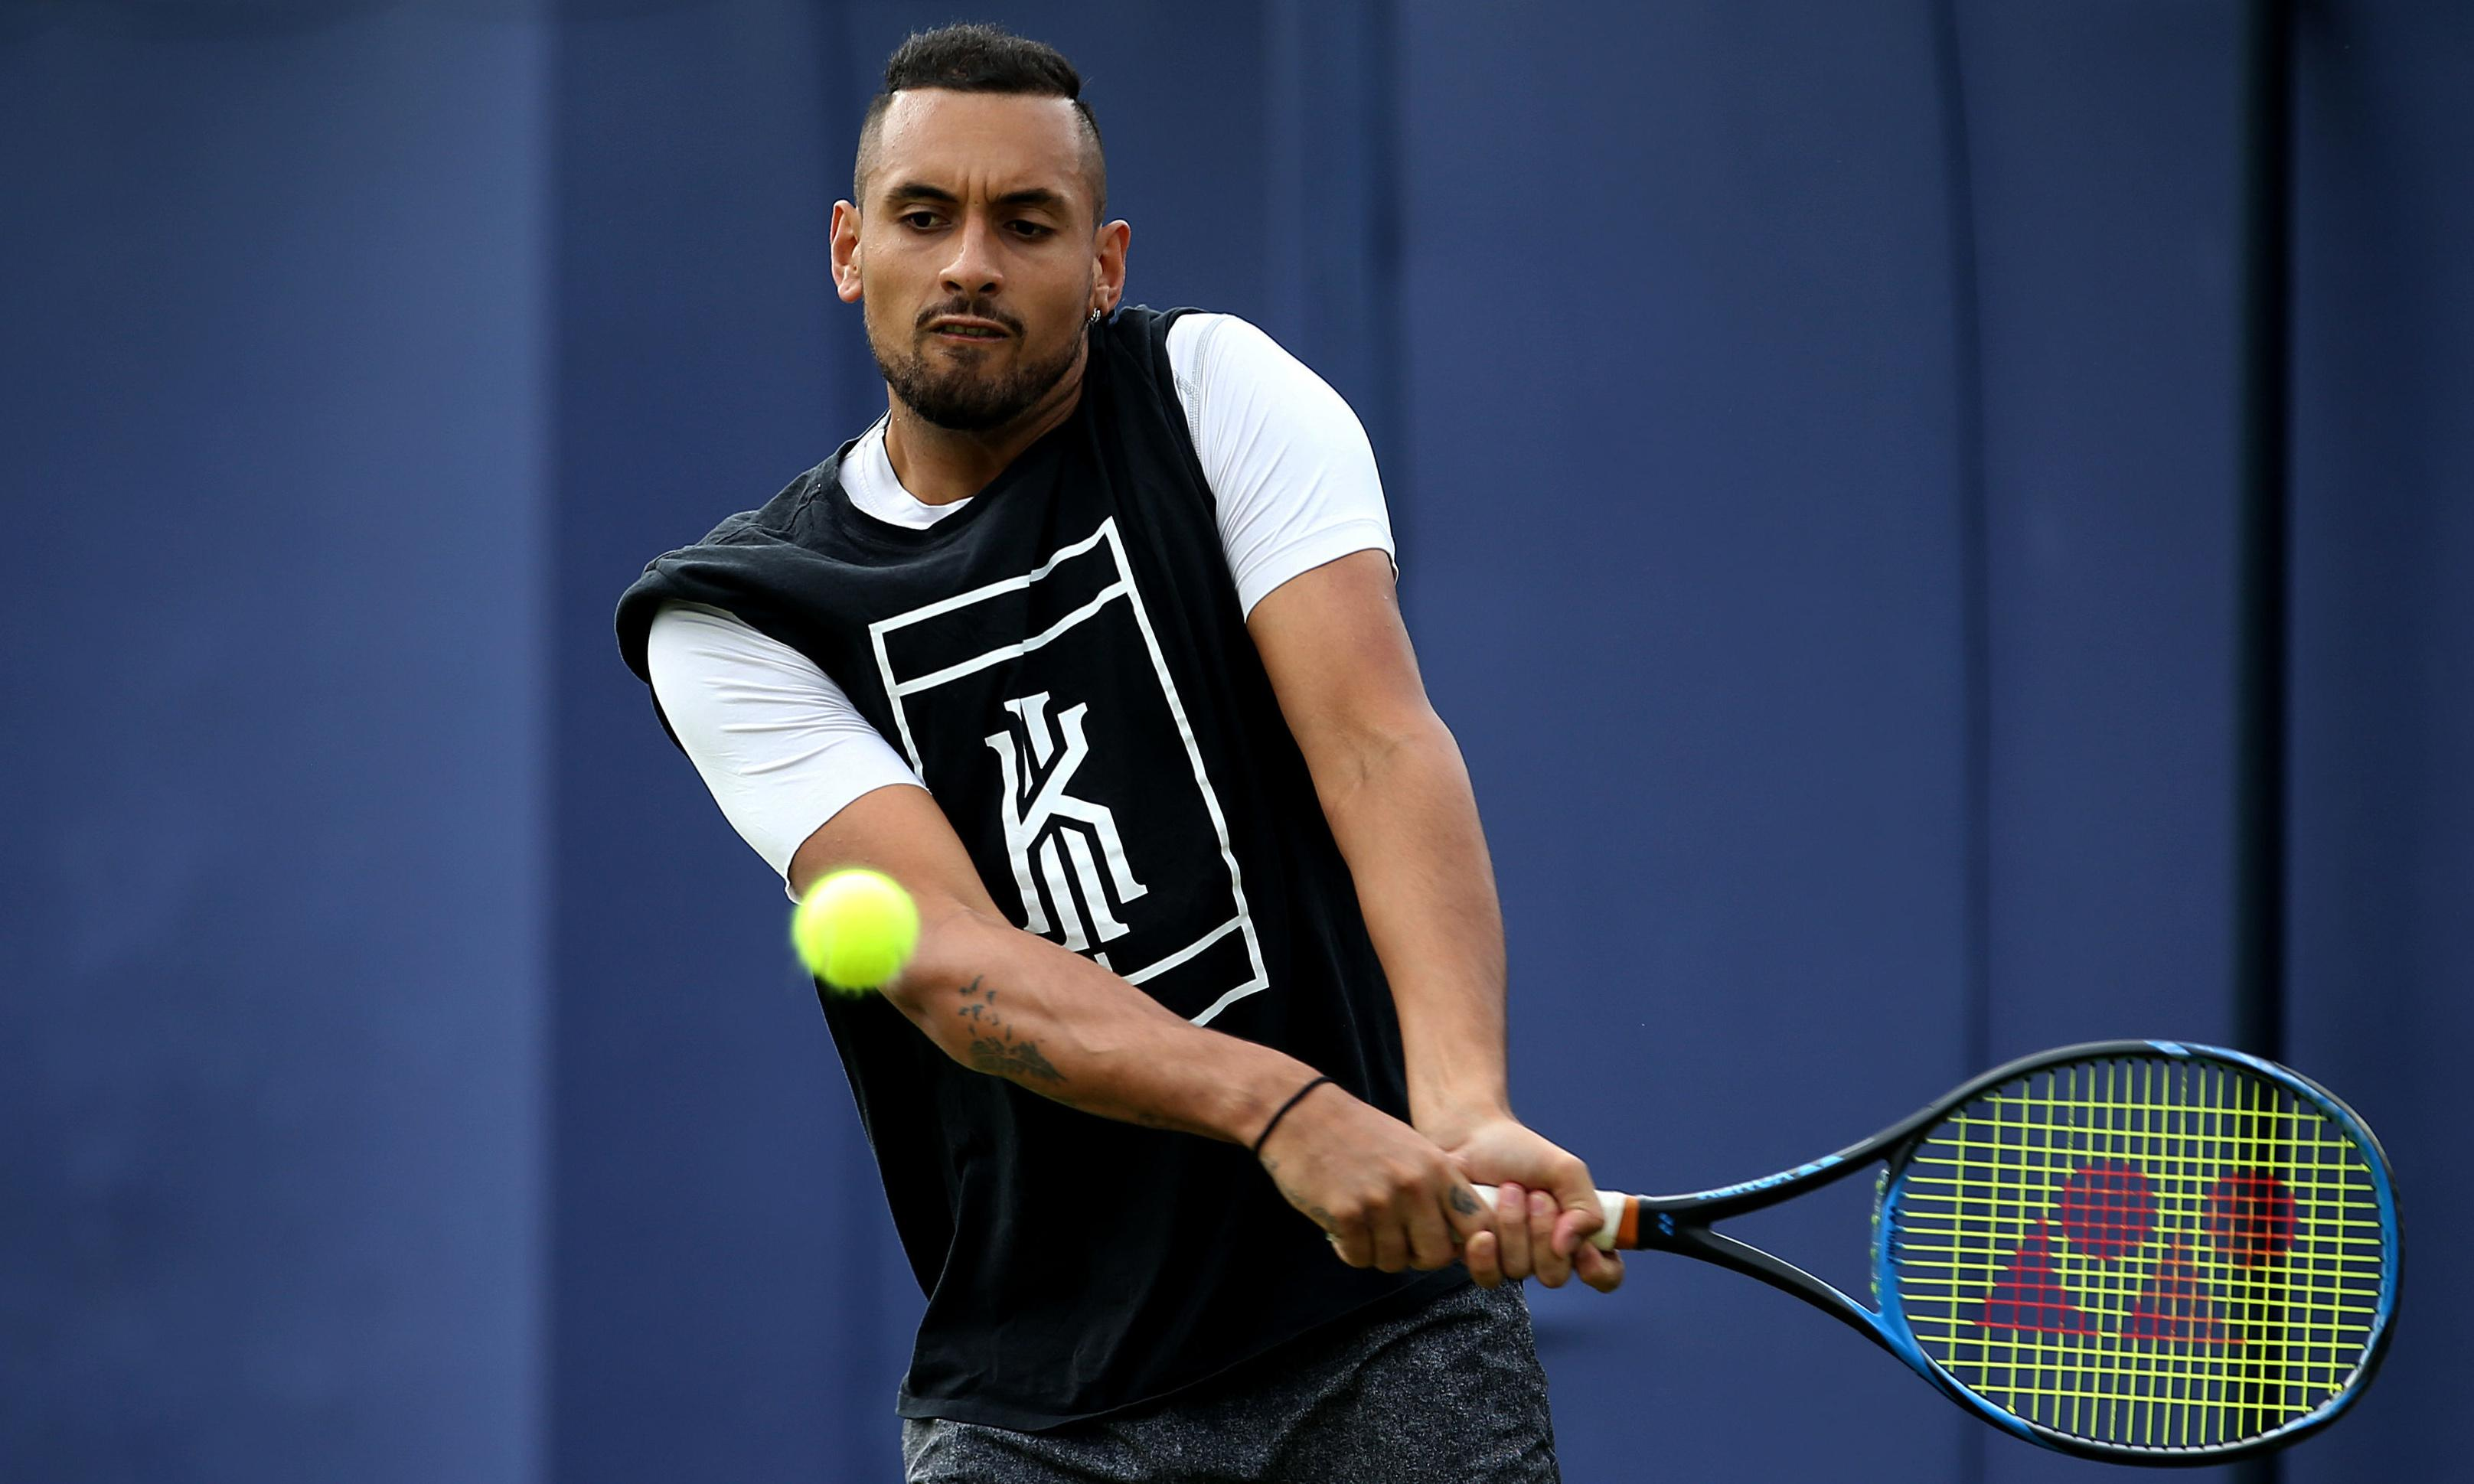 Nick Kyrgios leads latest outpouring of disrespect towards top players